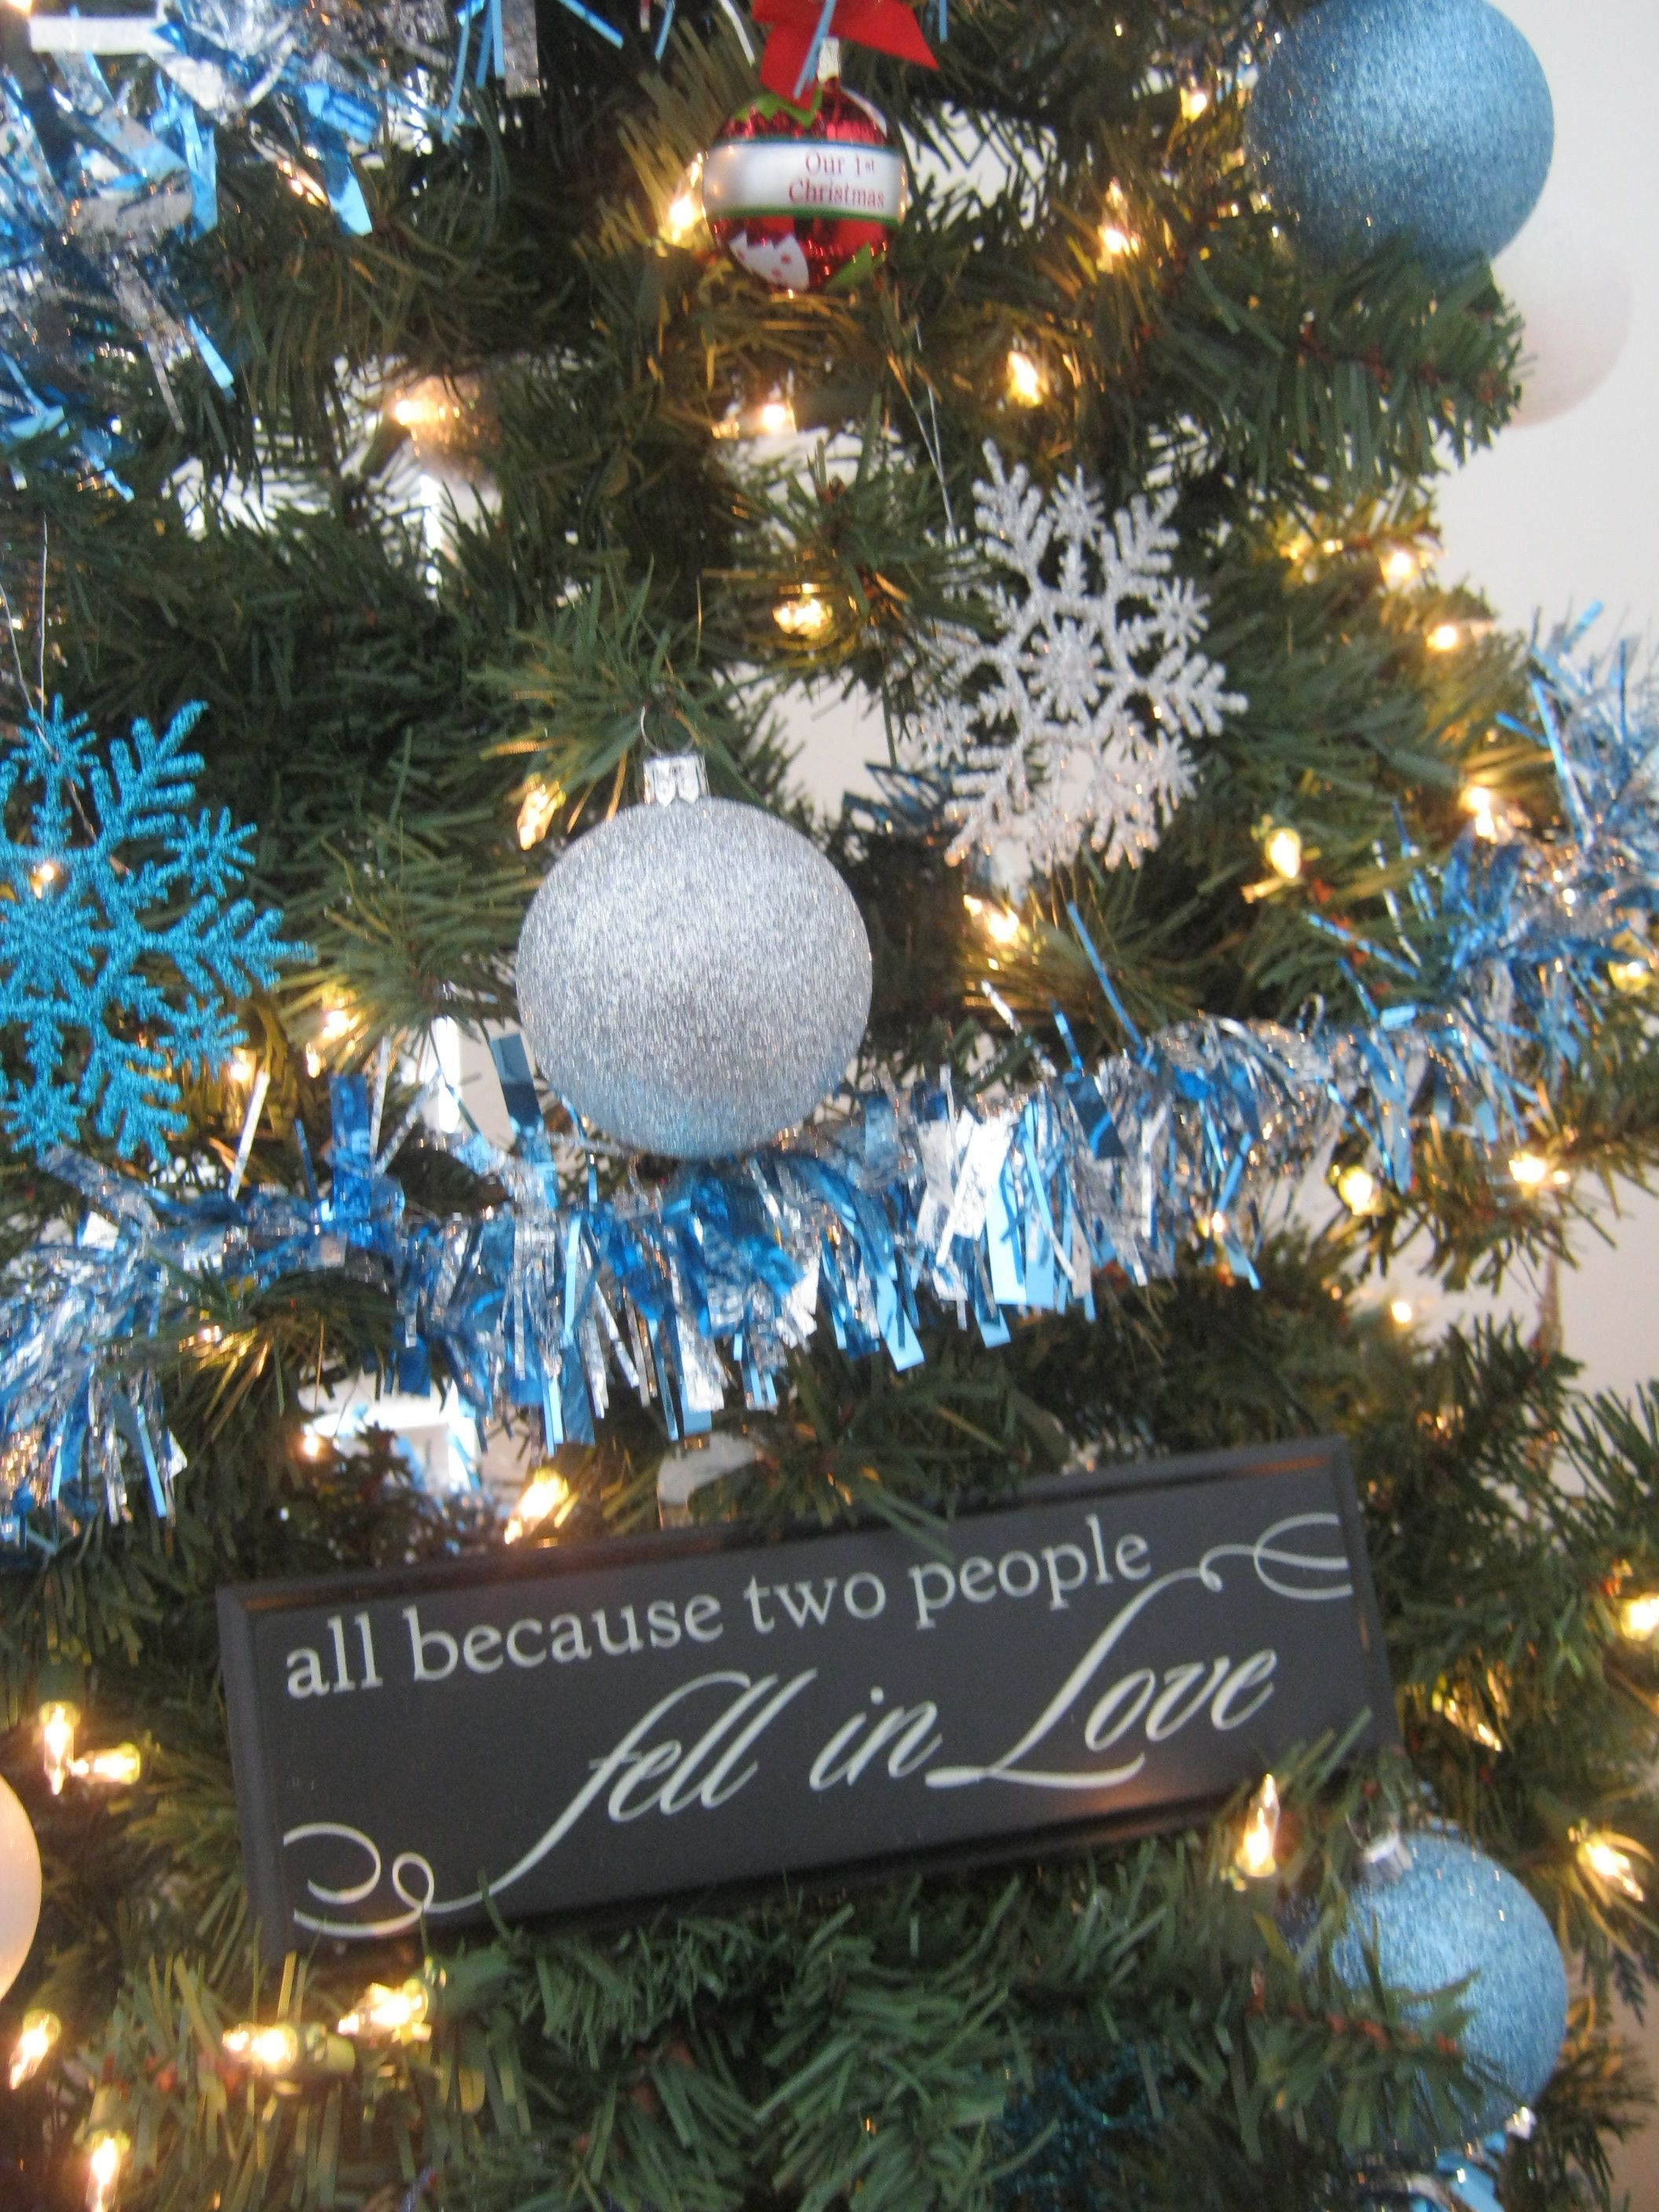 Christmas Trees Place Small Wood Quotes On The Tree As Decorations Christmas Bulbs Christmas Time Christmas Ornaments